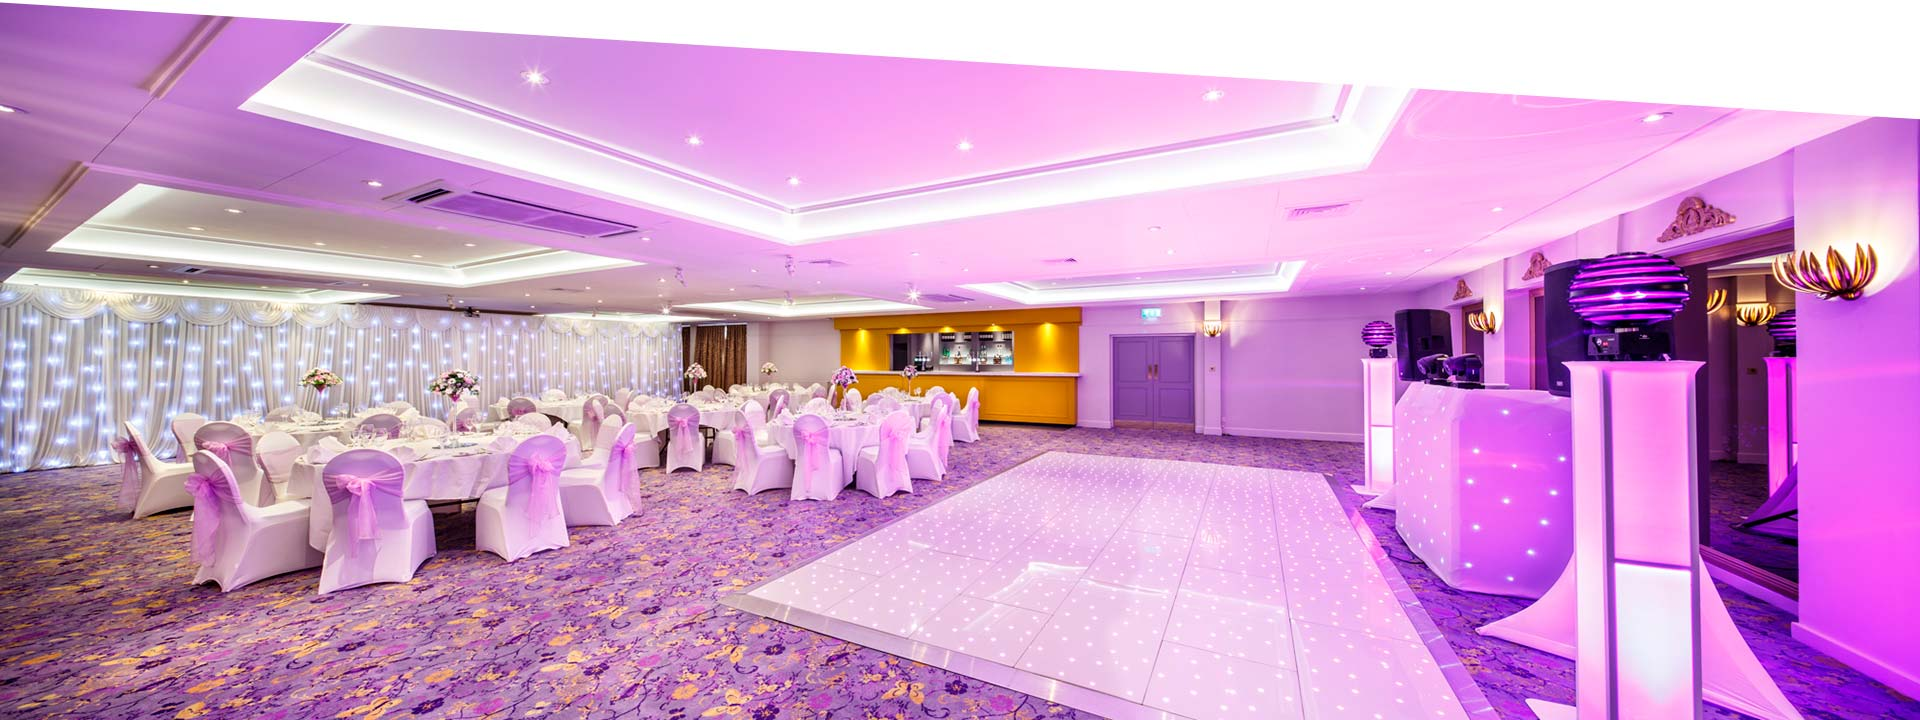 Mercure London Watford Hotel Christmas Party